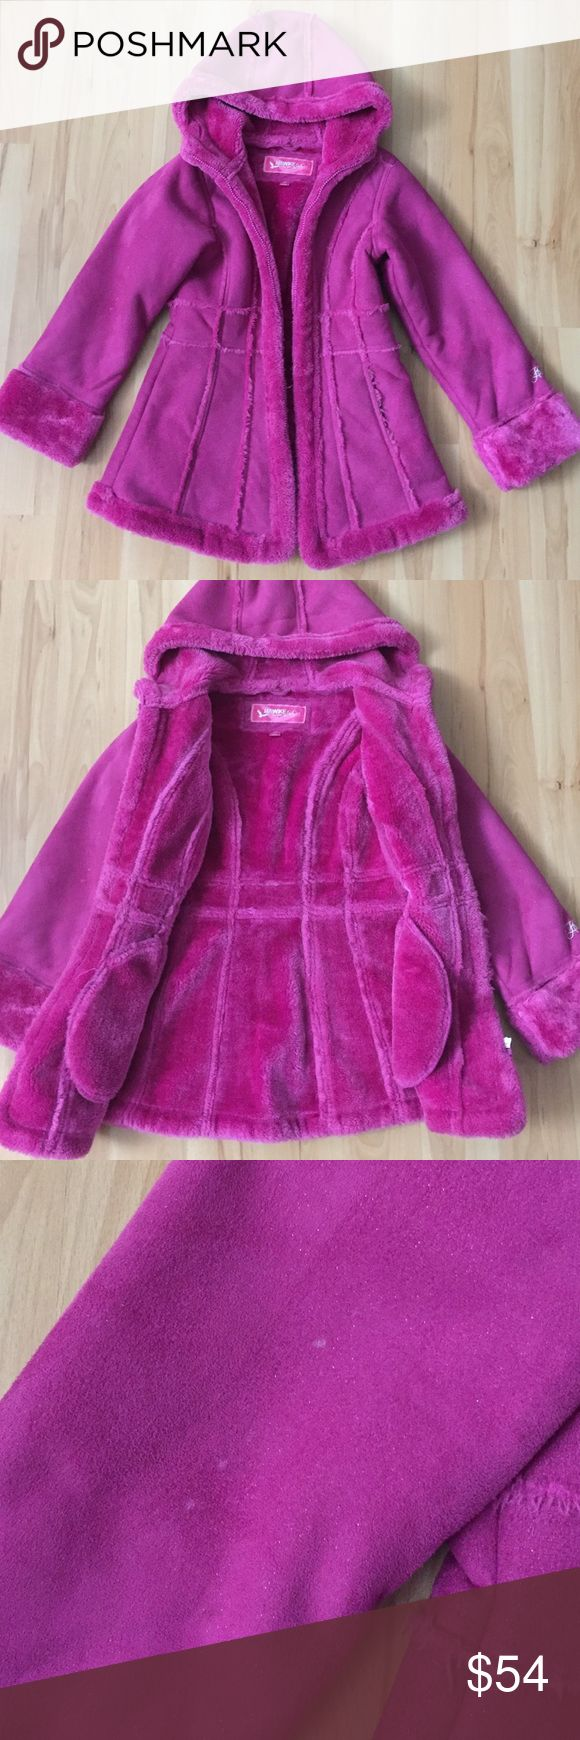 Girls Hooded Faux Fur Coat Size 6X. Gently used condition. Small stains on sleeve from rain/snow. Two pockets. Thick warm faux fur material. Chest 15in. Length 23in. Sleeve 19in. 100% polyester. Jackets & Coats